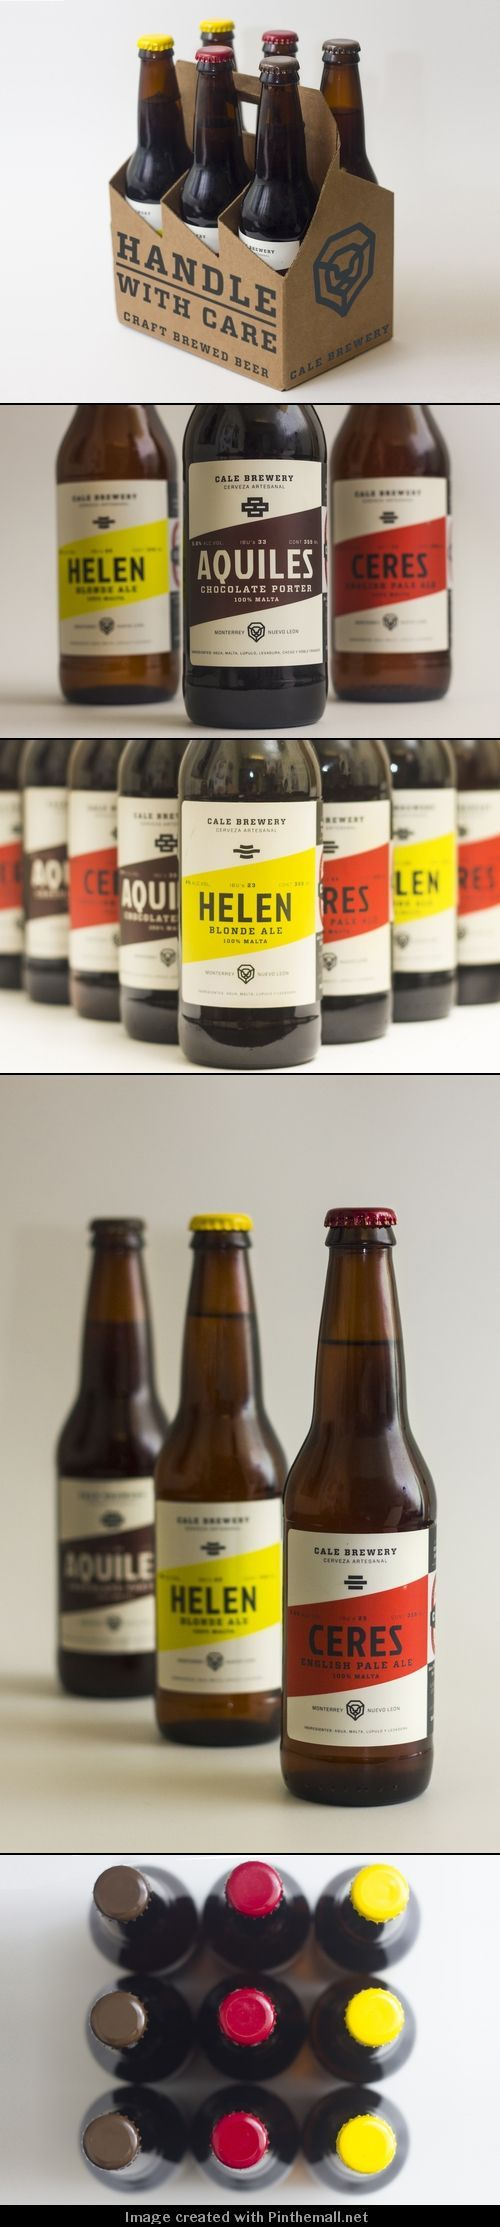 Cale Brewery | Designed by Suizopop, Cale Brewery is a craft beer company from Monterrey, México.